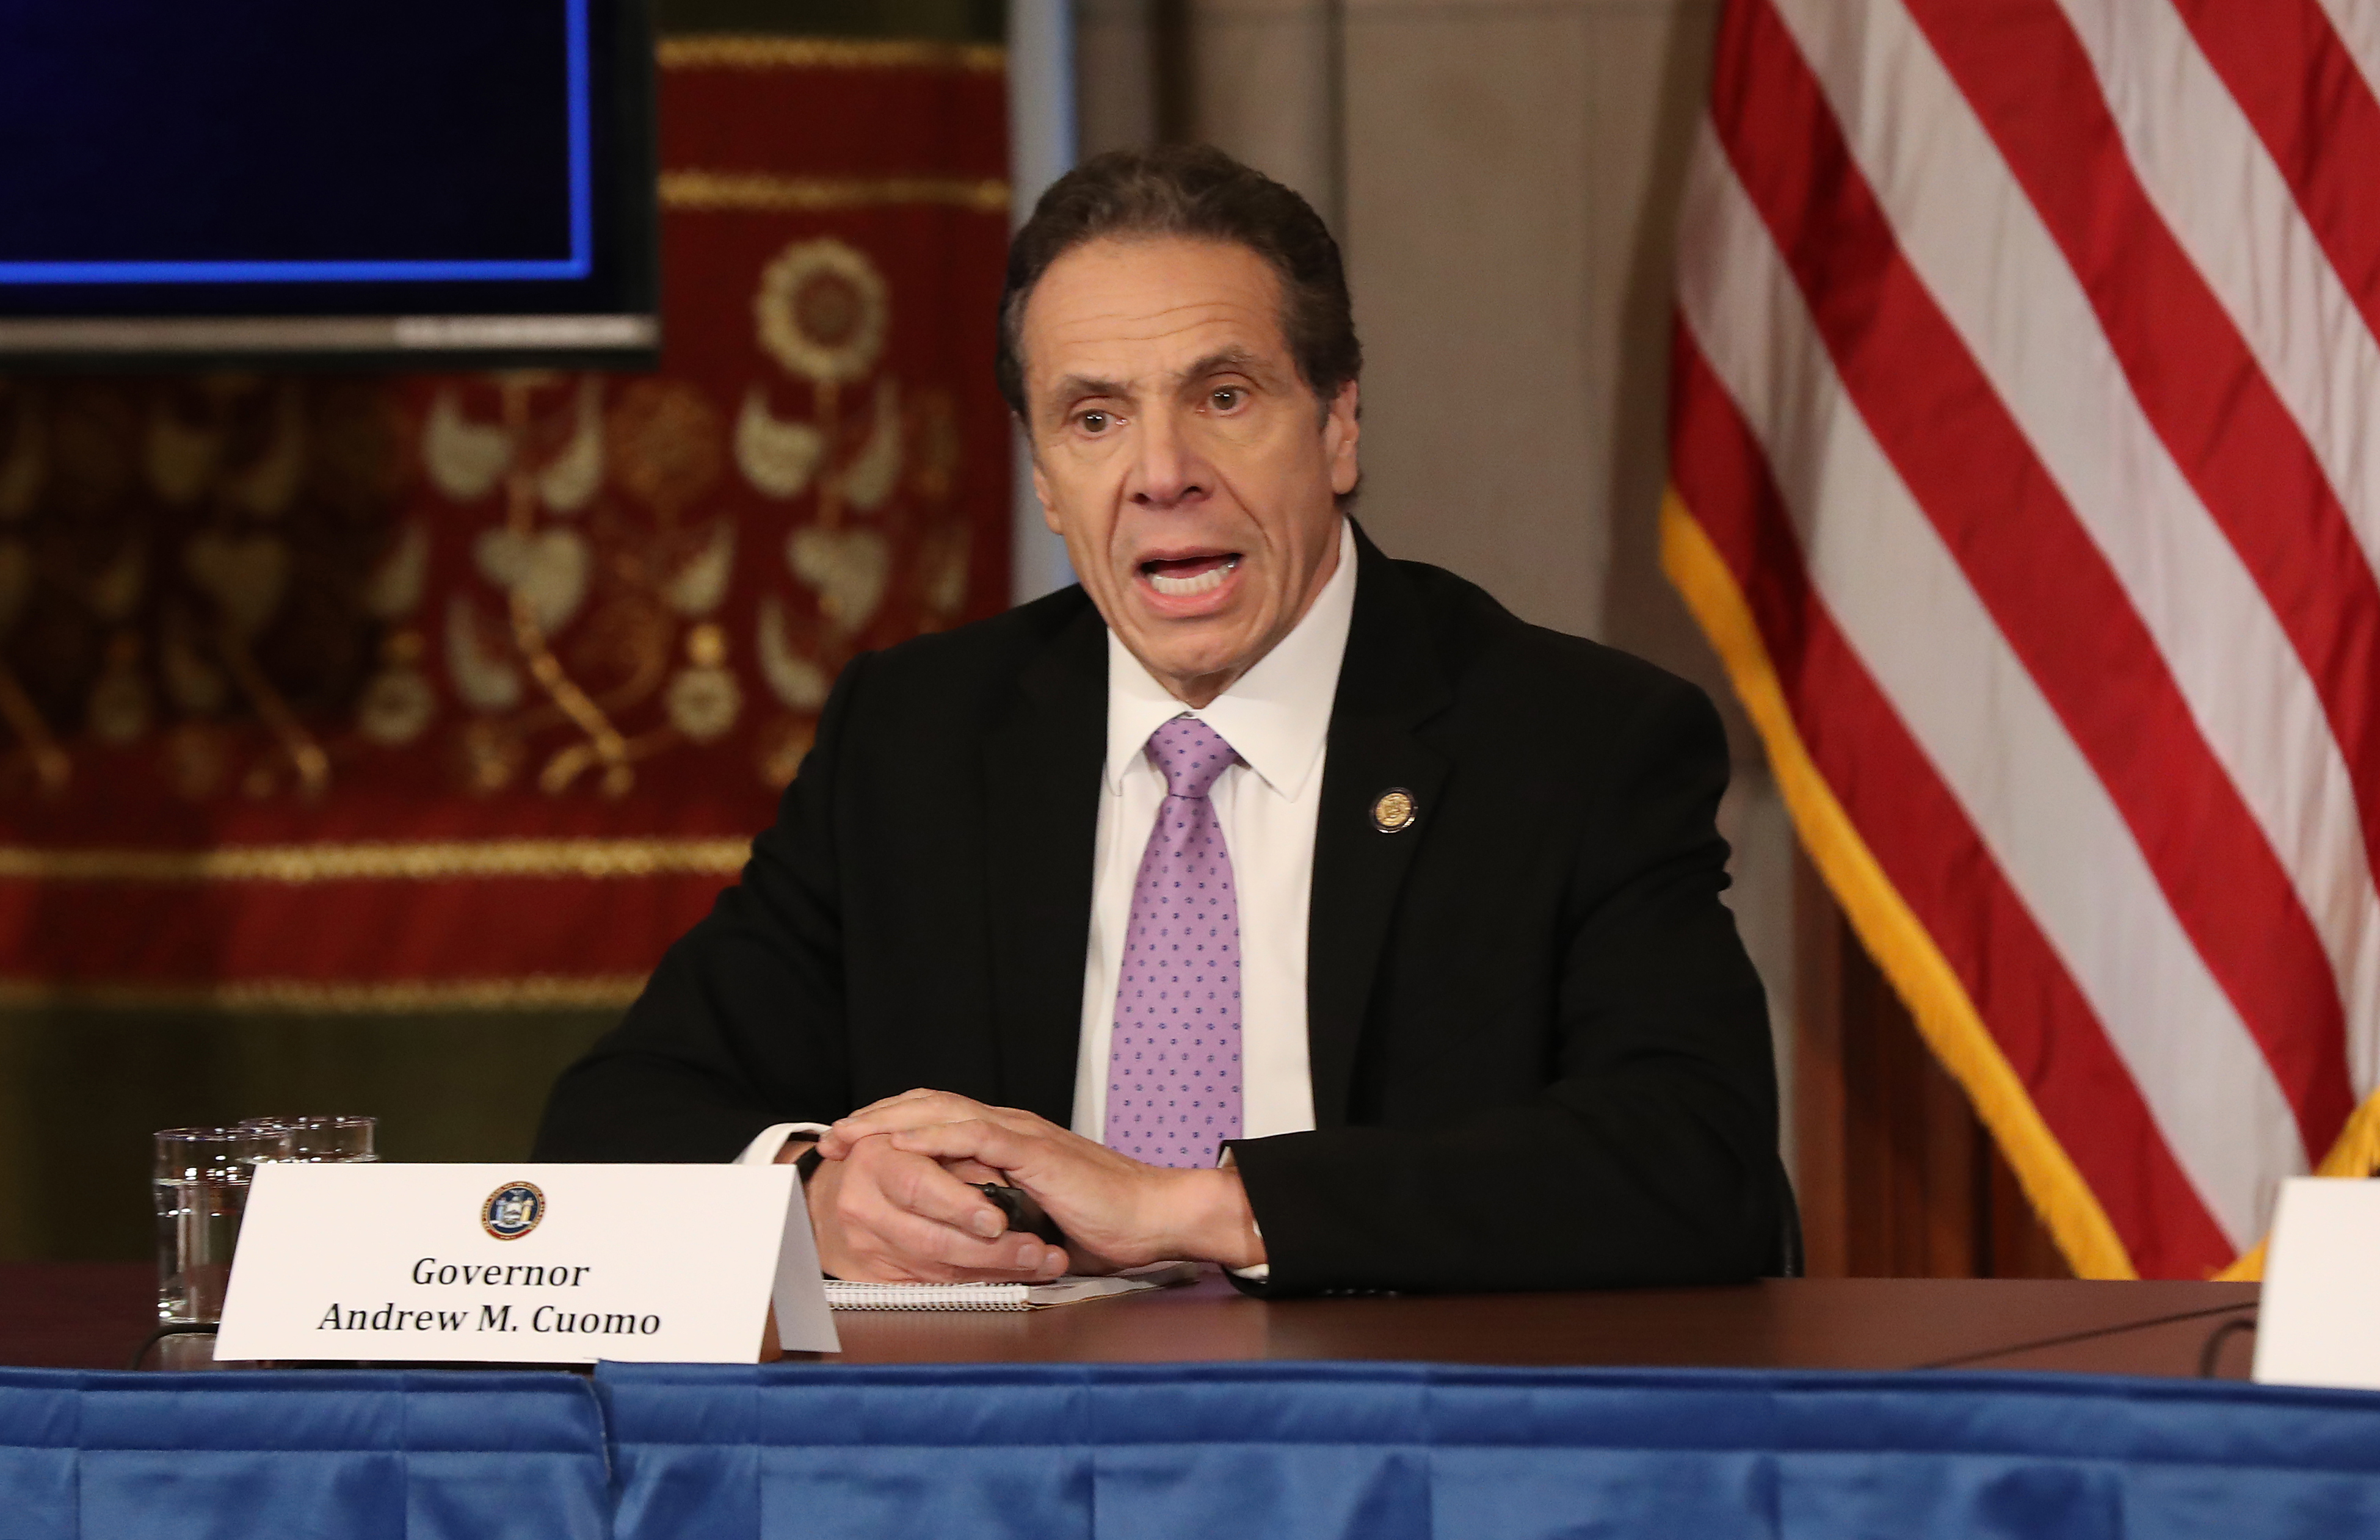 New York Gov. Andrew Cuomo Holds Press Conference Wednesday, Amid Sexual Harassment Allegations